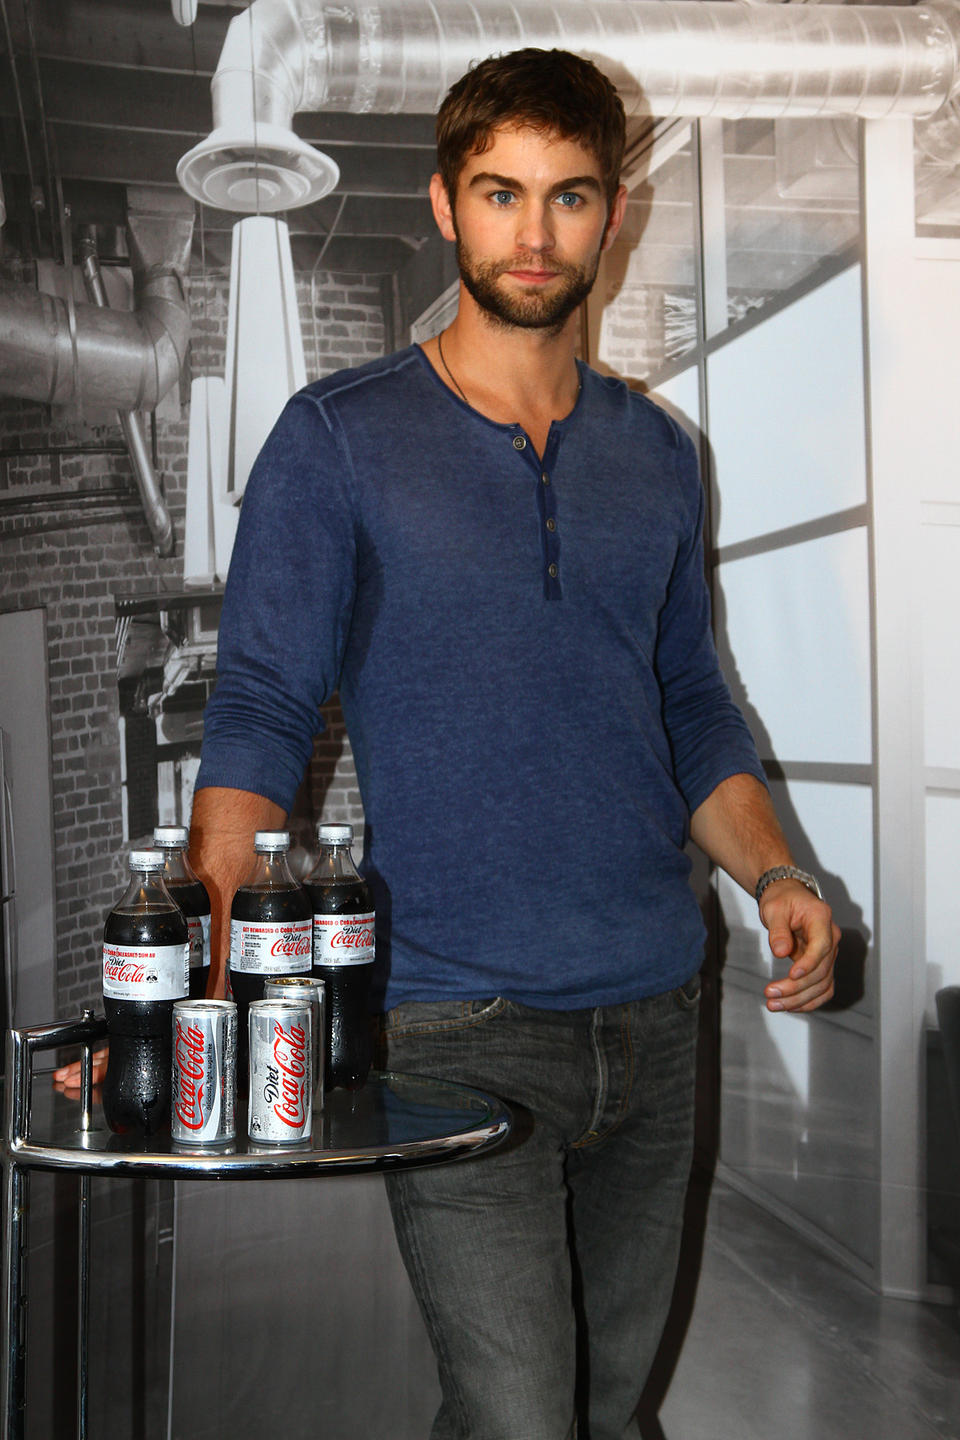 Chace Crawford Greets Fans At A Diet Coke Promo